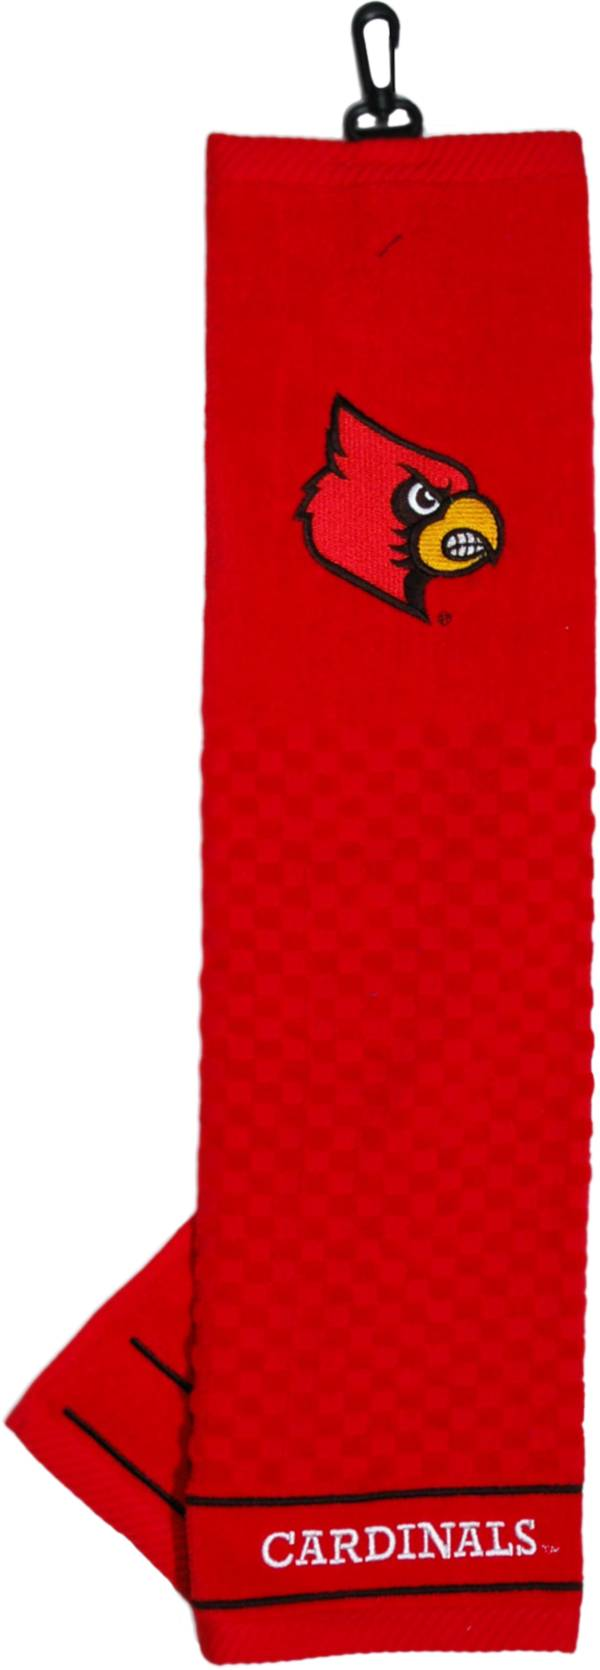 Team Golf Louisville Cardinals Embroidered Towel product image